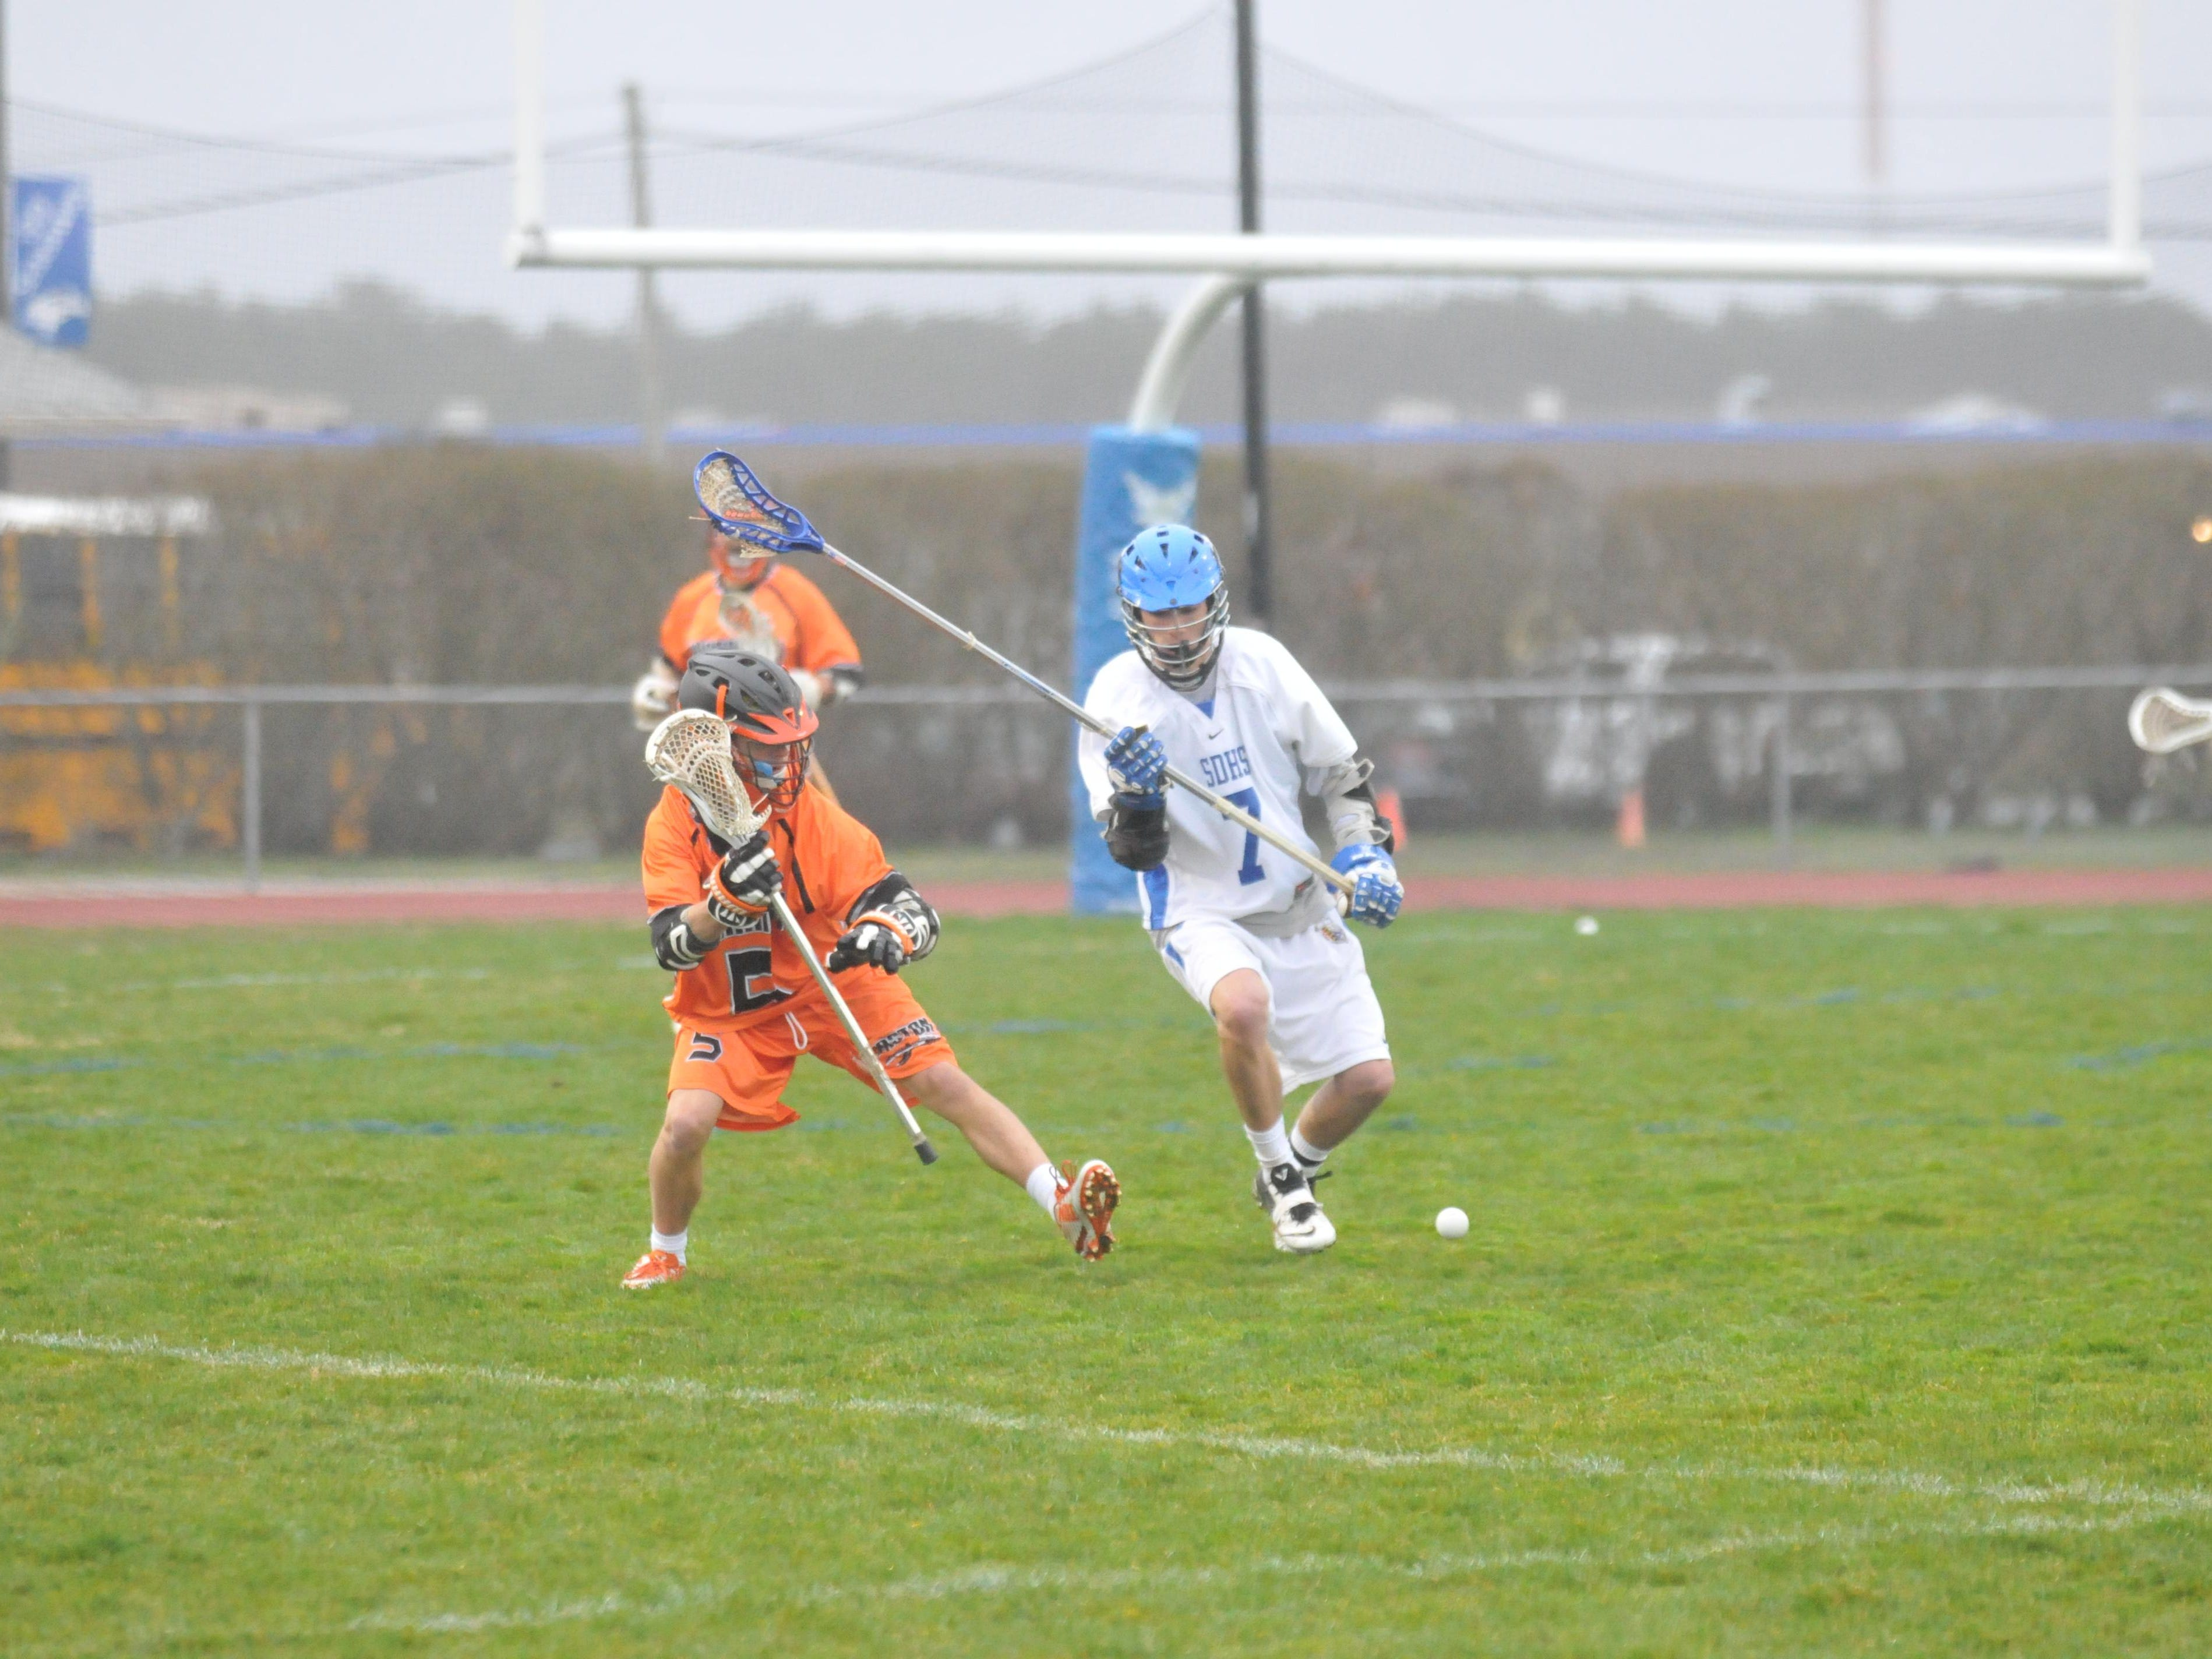 Stephen Decatur's Craig Snyder knocks a ball away from an Easton player.